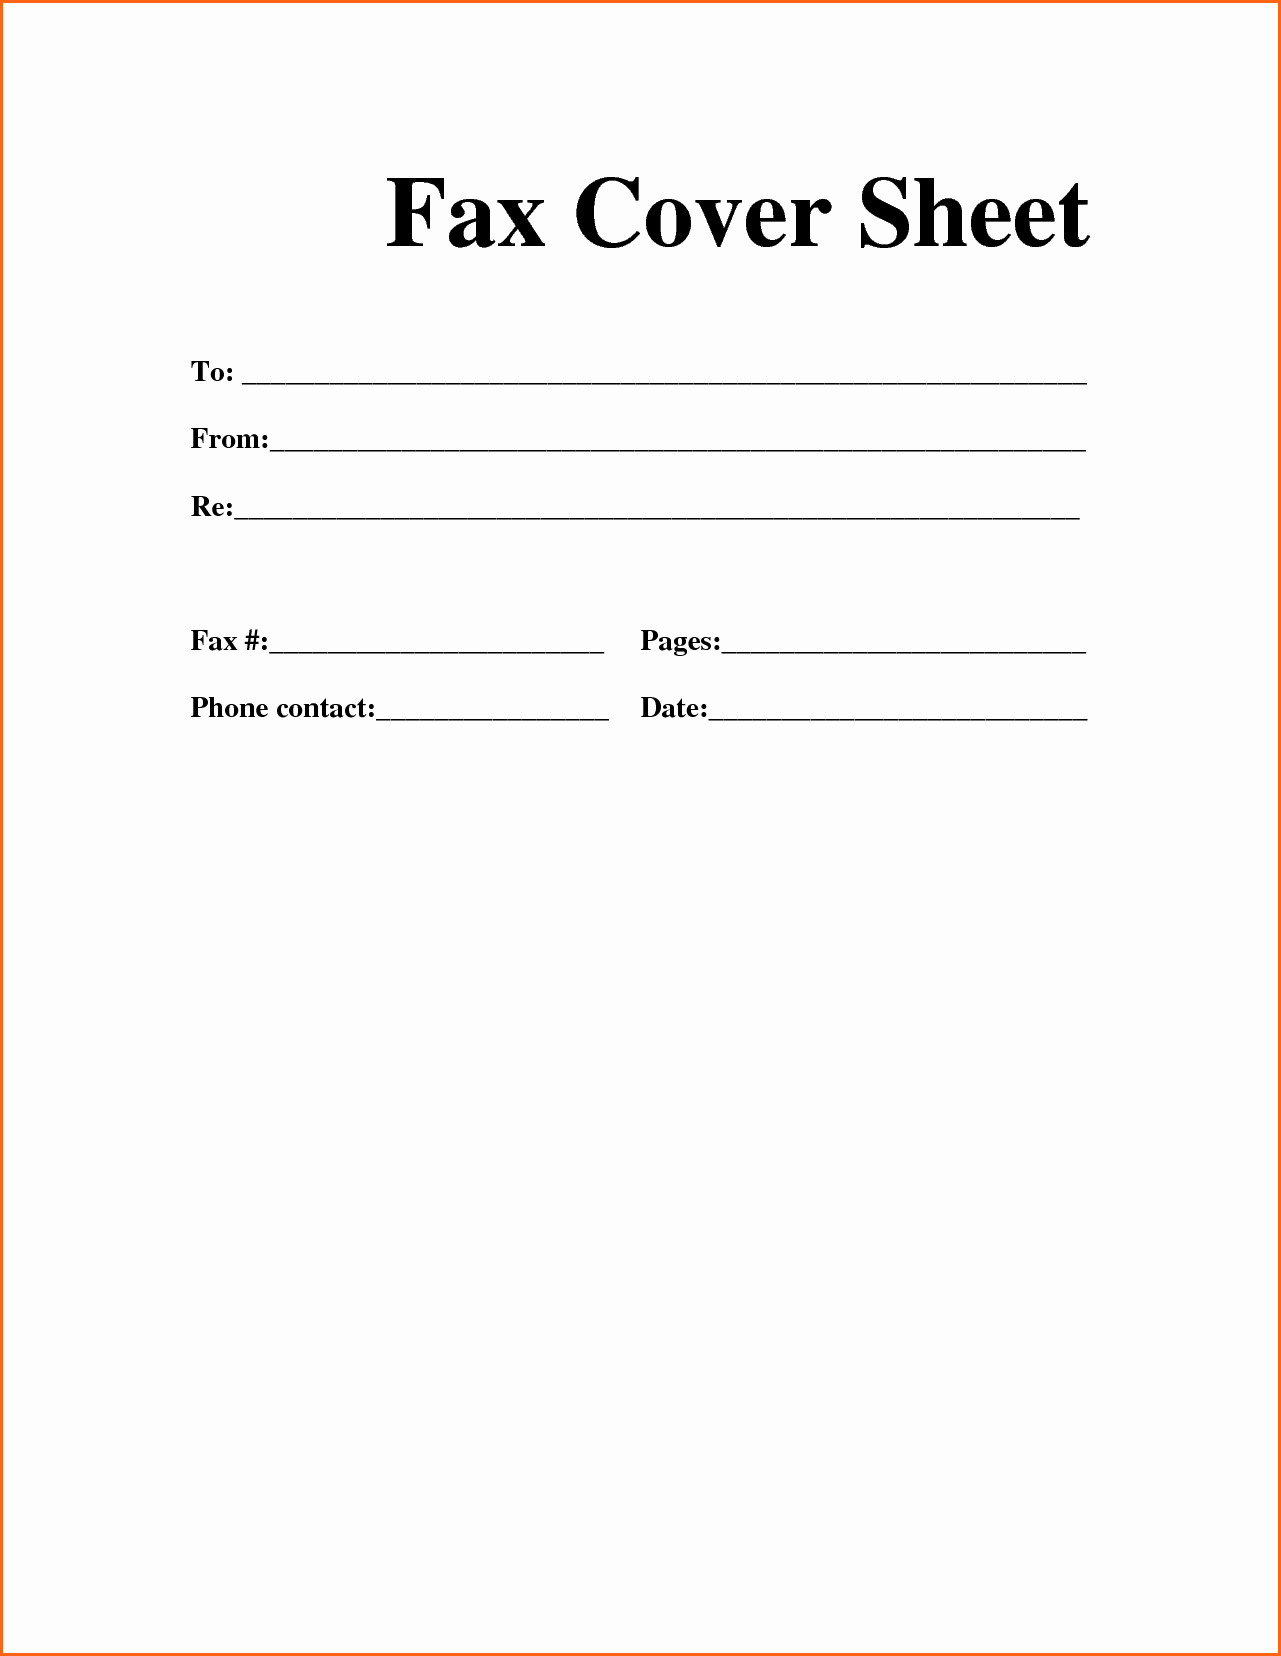 Cover Sheet for A Fax Luxury 8 Printable Fax Cover Sheet Bud Template Letter